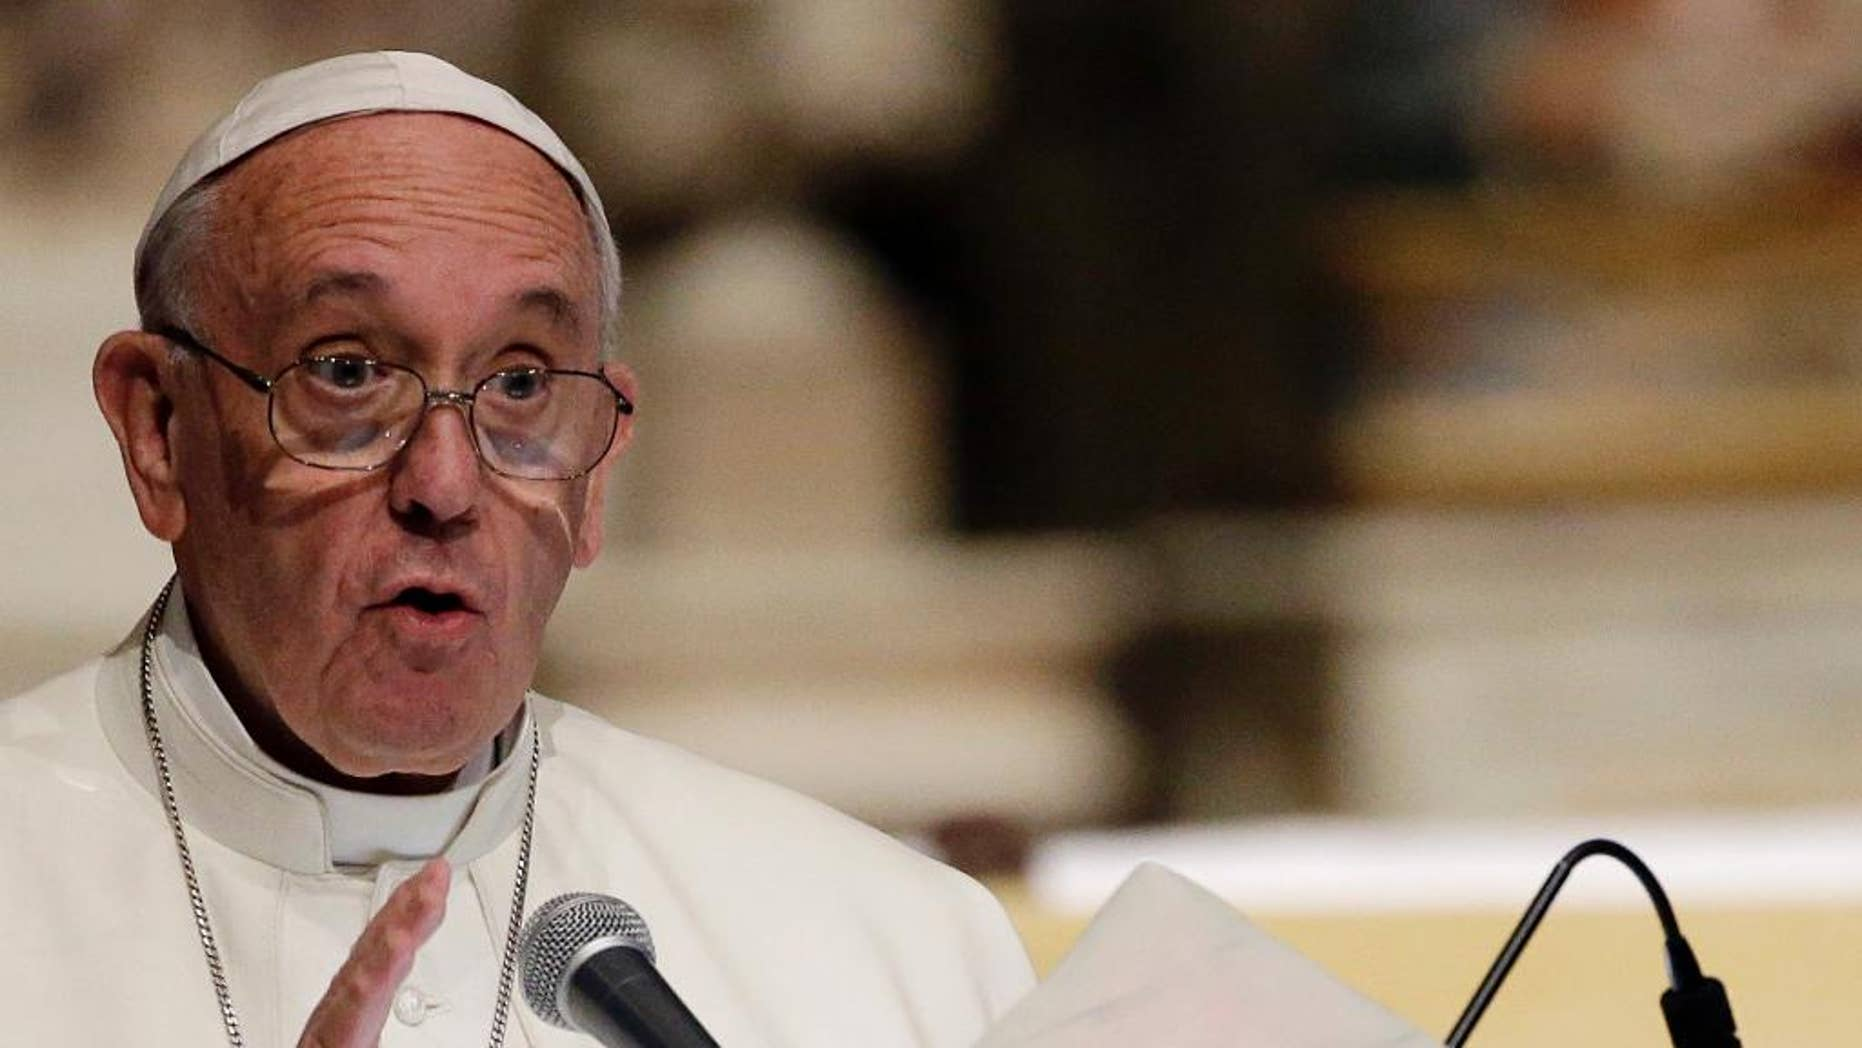 File photo - Pope Francis delivers his message in the Cathedral Santa Maria del Fiore during his visit to Florence, Italy, Tuesday, Nov. 10, 2015. (AP Photo/Gregorio Borgia) (The Associated Press)